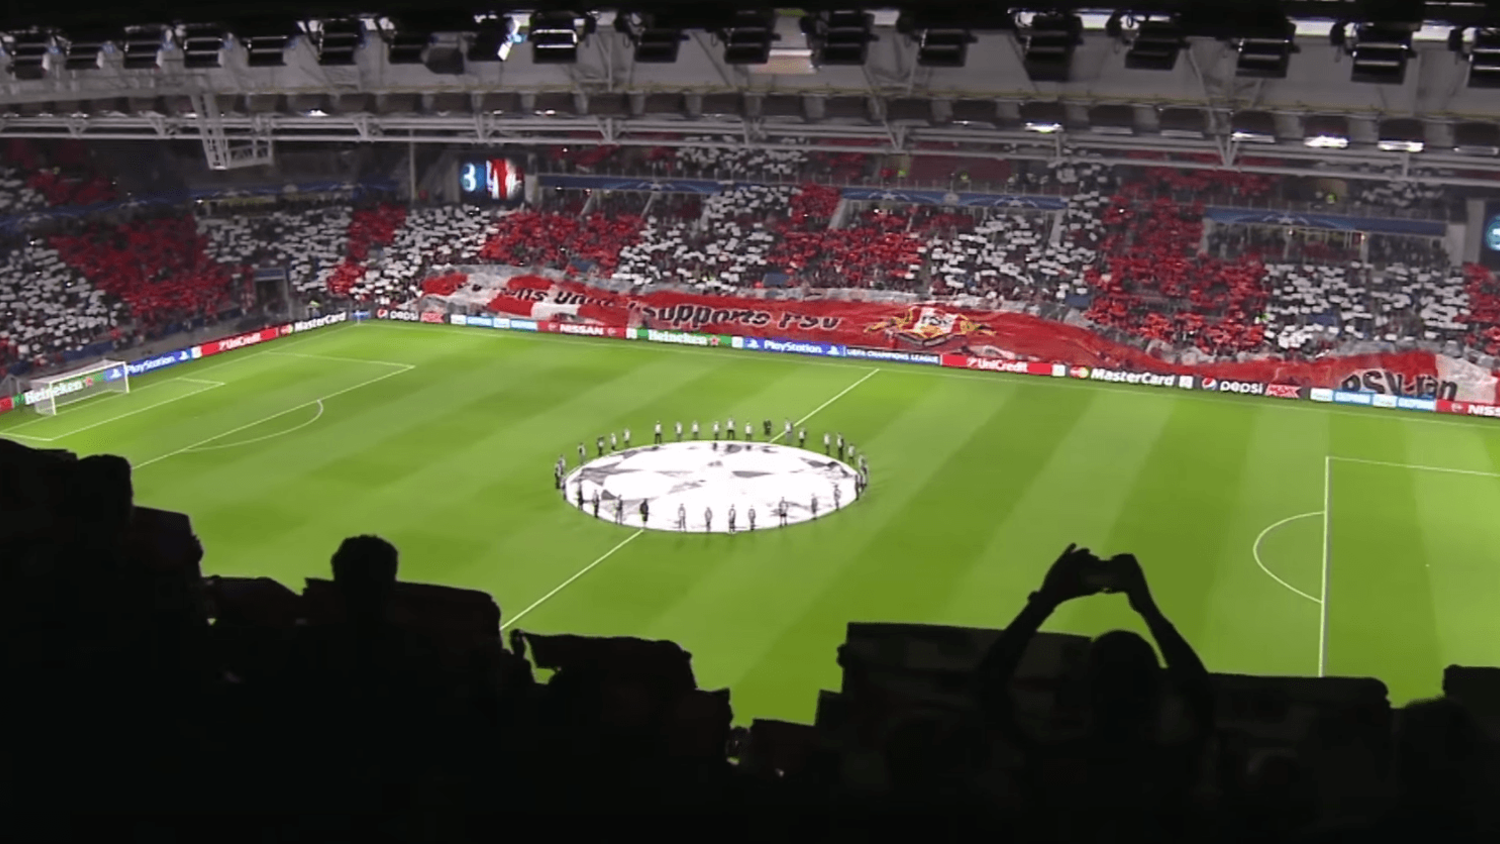 This is PSV: The People's Club